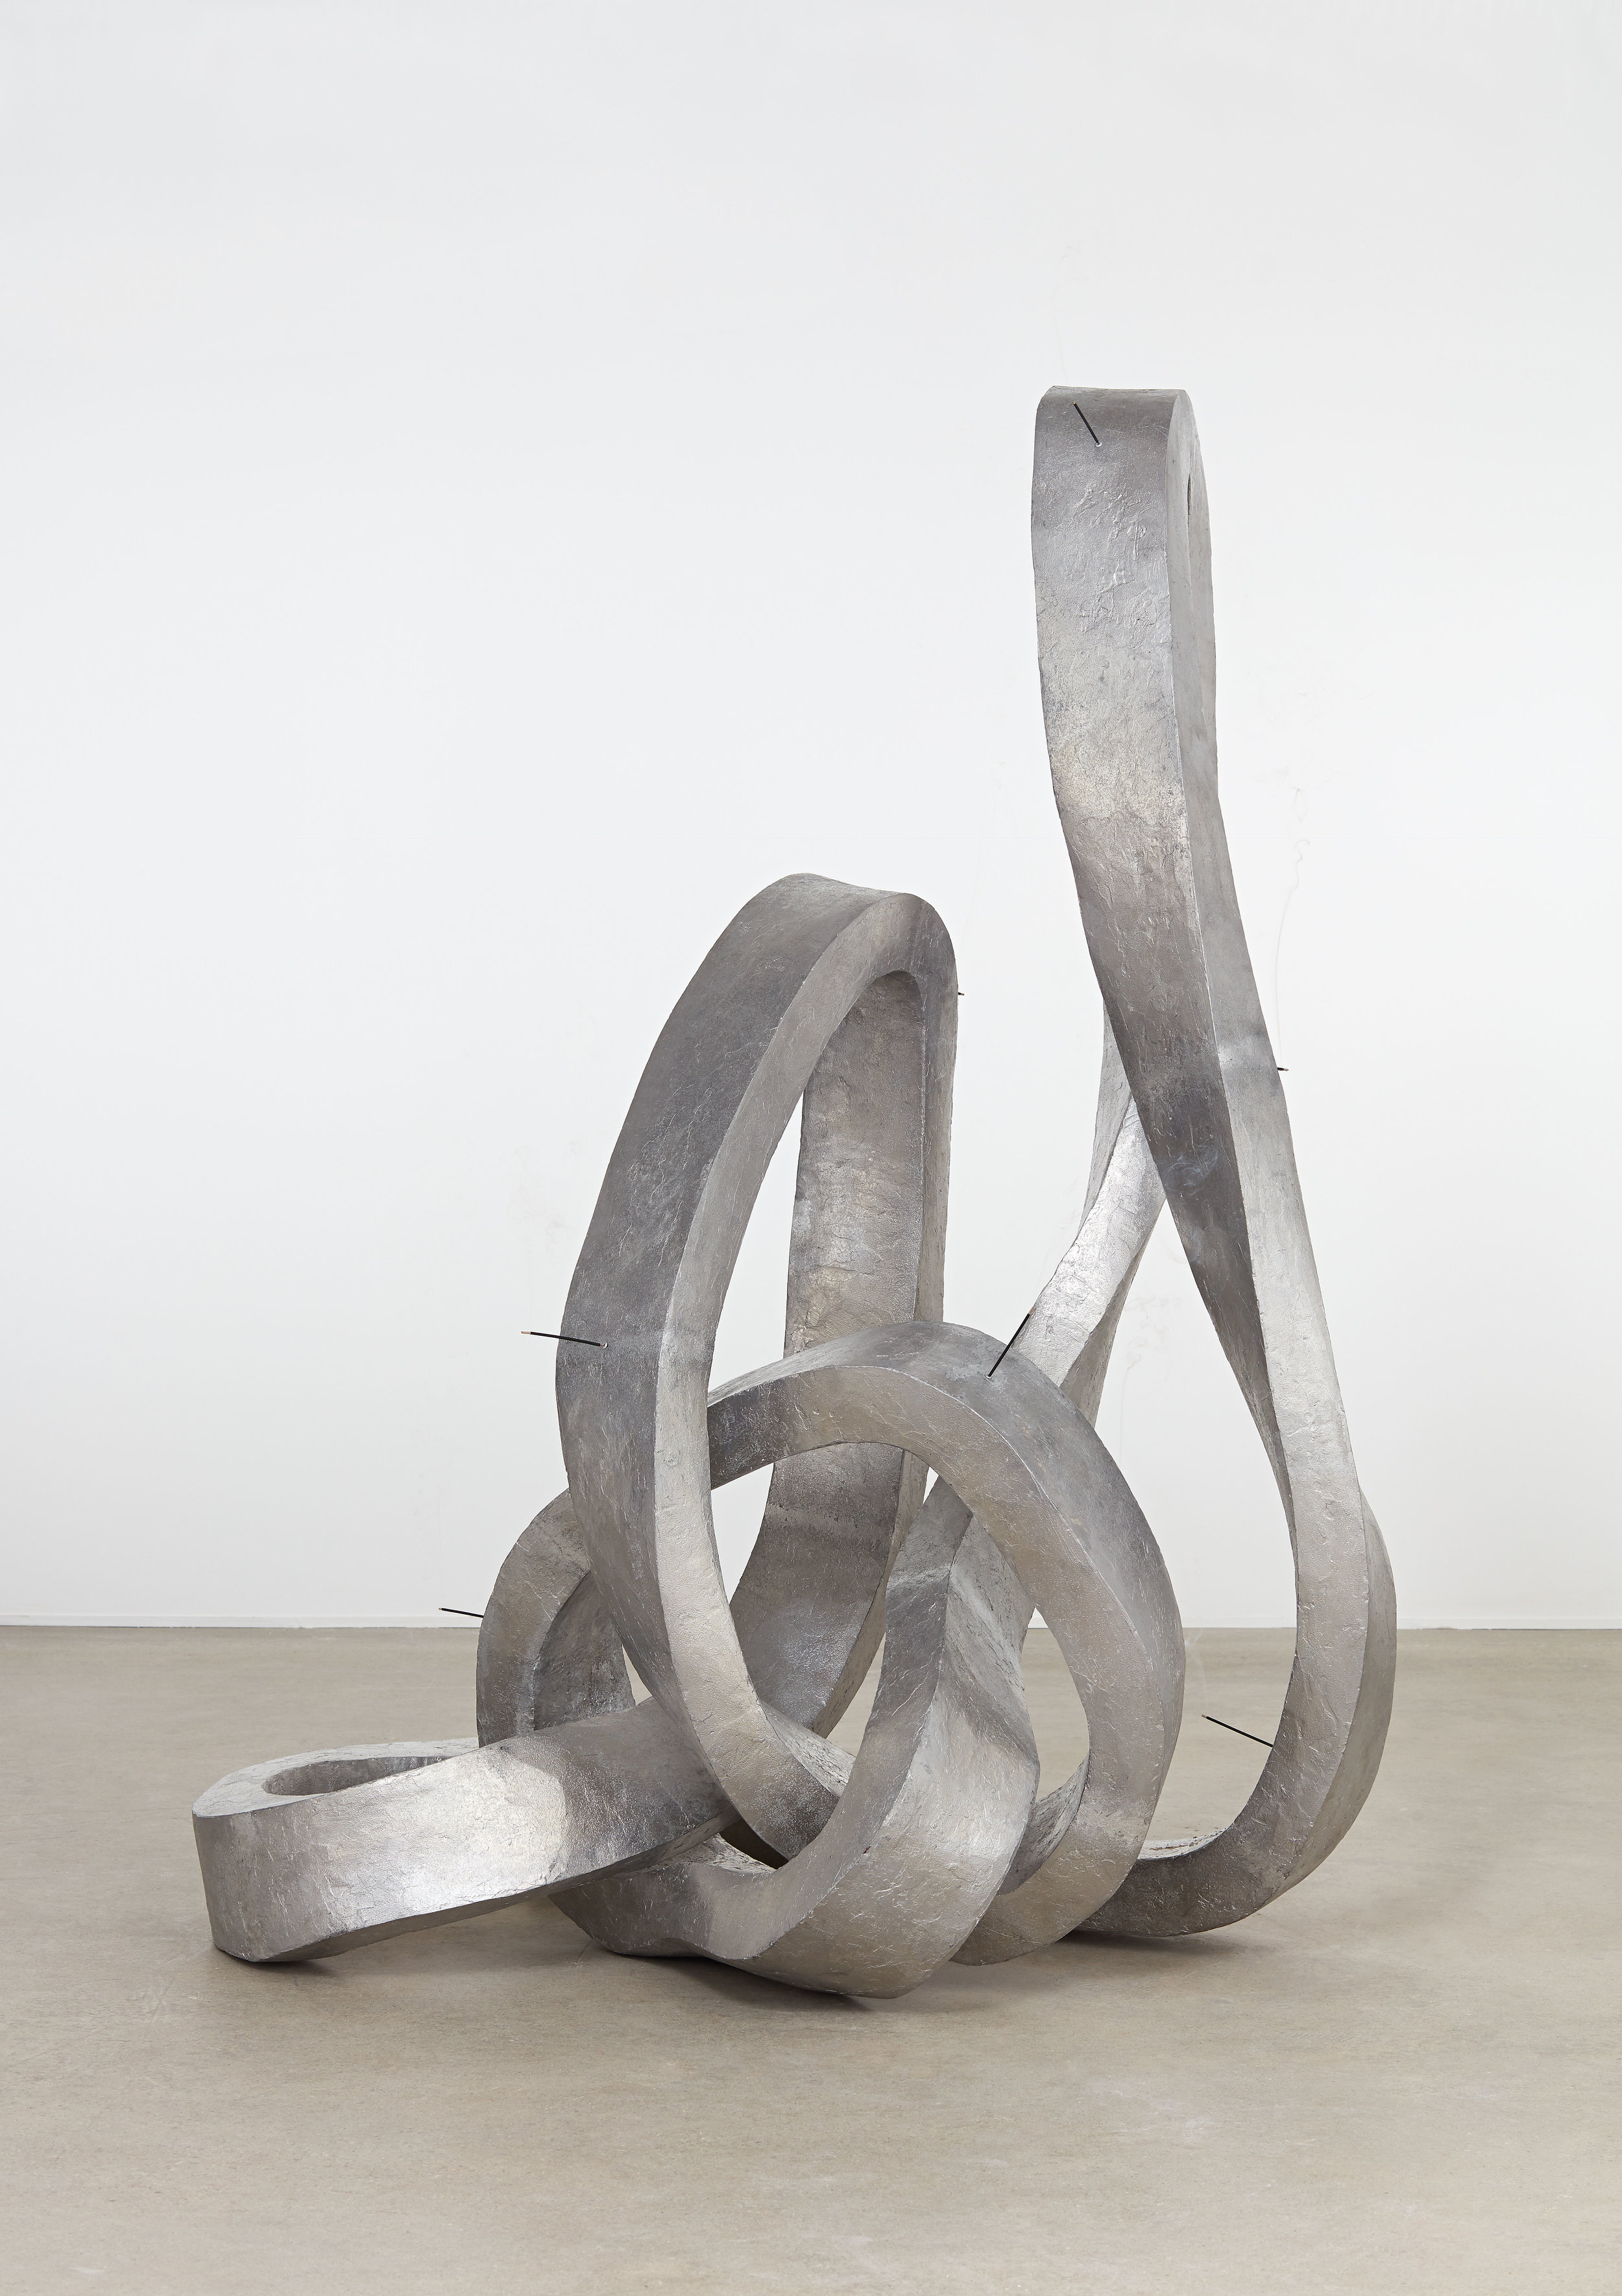 "EVAN HOLLOWAY. ""LOOP WITH 11 INCENSE STICKS"" (2018). CAST ALUMINUM AND INCENSE. 80.75 X 52 X 22IN. IMAGES COURTESY OF THE ARTIST AND DAVID KORDANSKY GALLERY. PHOTO BY LEE THOMPSON."